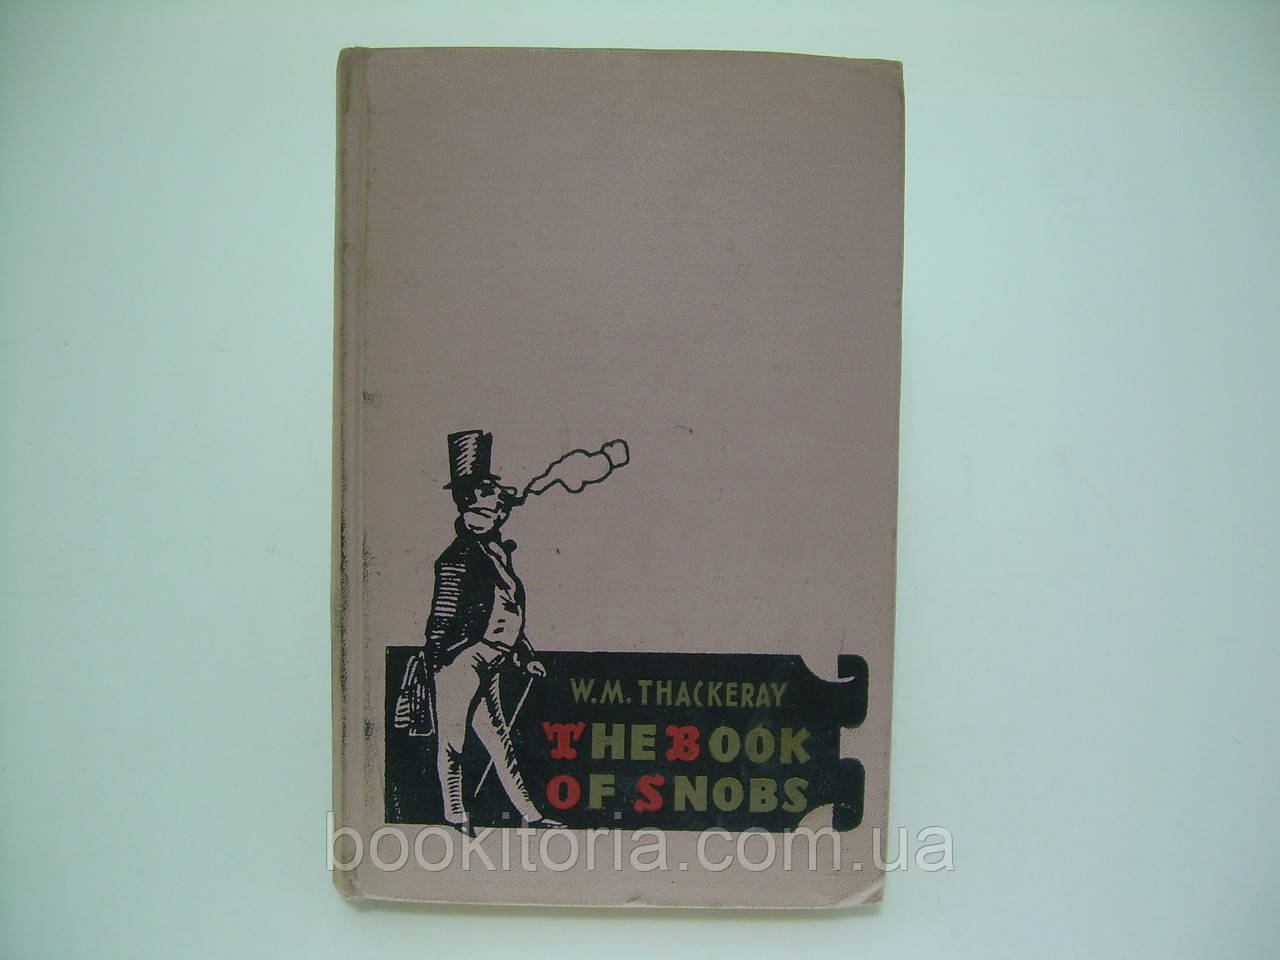 Thackeray W. (Теккерей В.) The book of snobs (Книга снобов) (б/у).